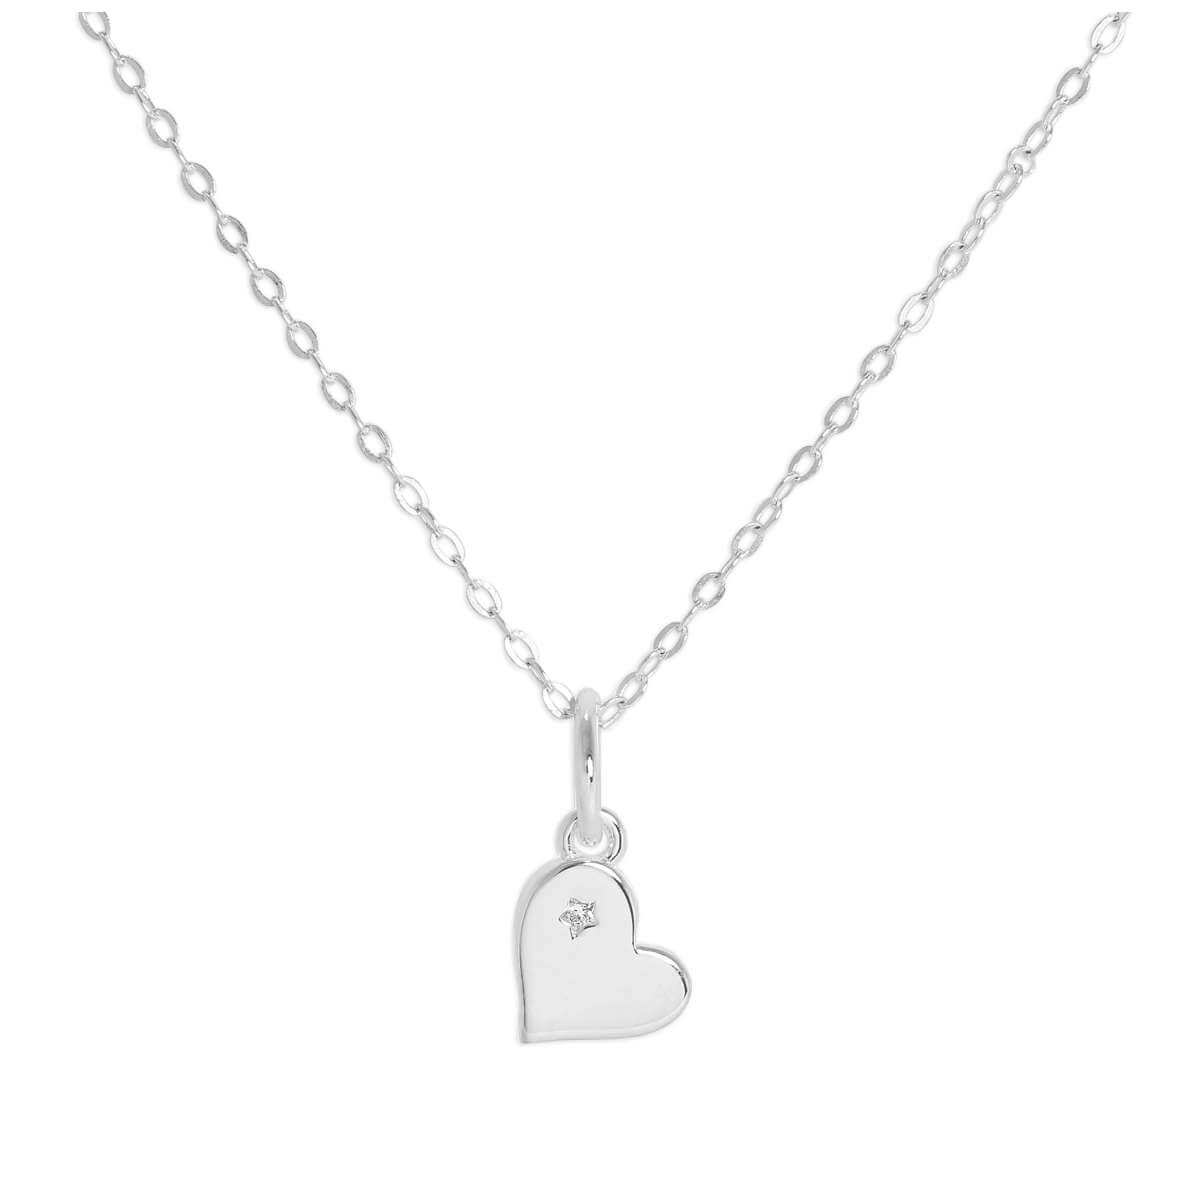 Sterling Silver & Genuine Diamond Heart Necklace 18 Inches Chain